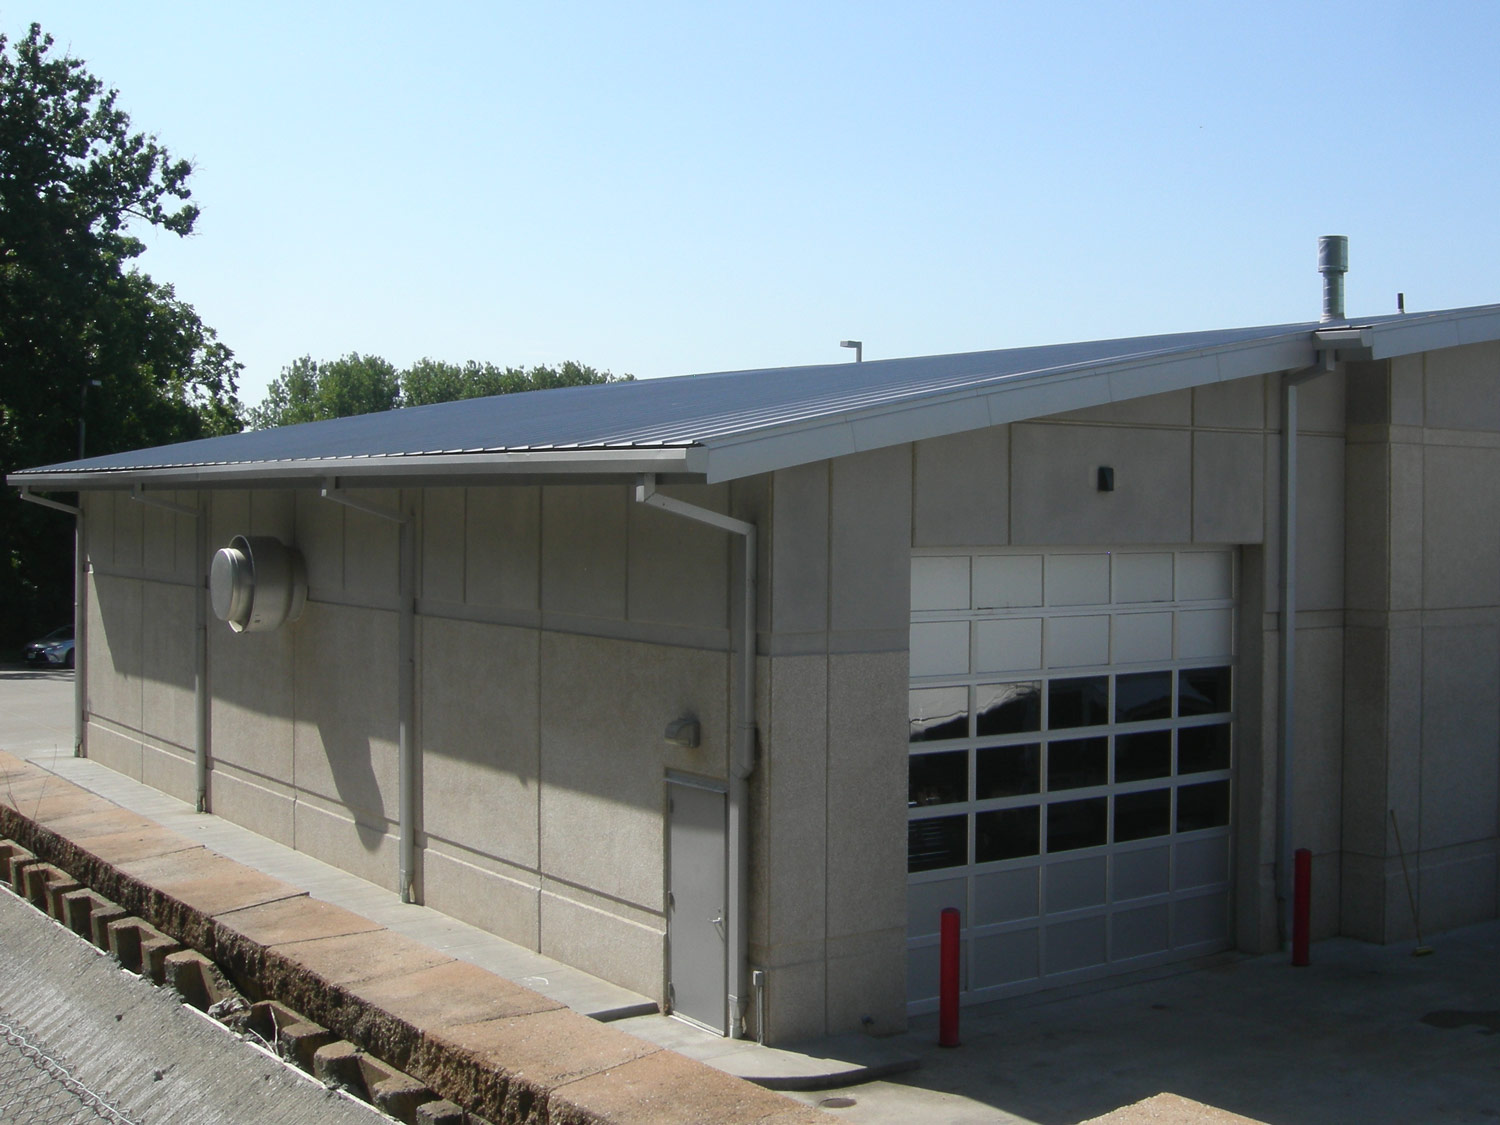 Window Rain Guards >> Fire Station No. 35 | Standard Sheet Metal